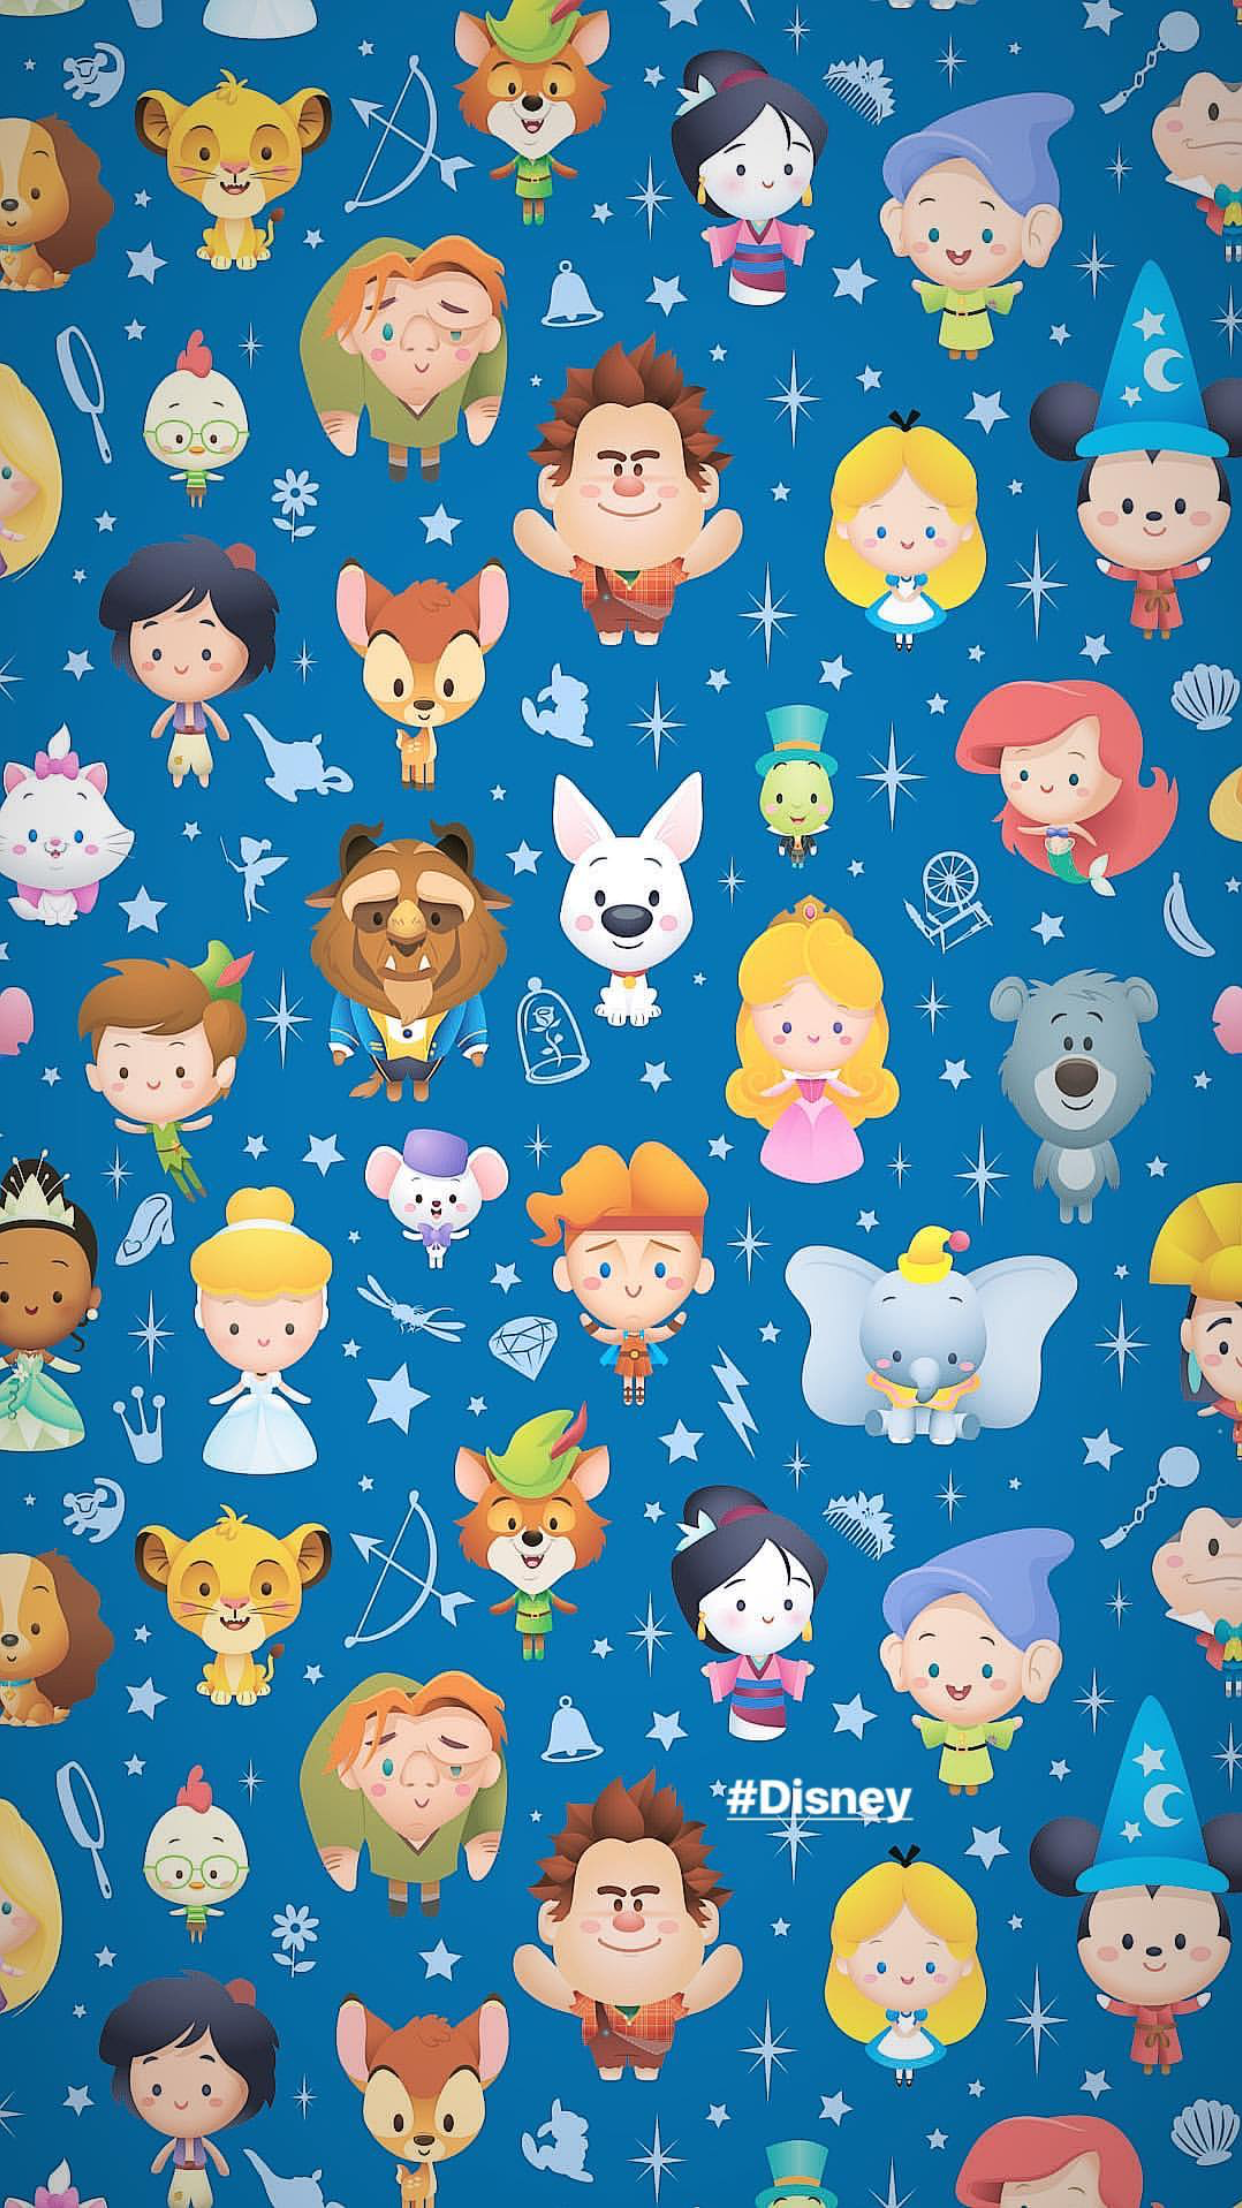 Disney Characters By Artist Jarrod Maruyama Lock Screen Wallpaper Background For Androi Disney Phone Wallpaper Wallpaper Iphone Disney Disney Phone Backgrounds